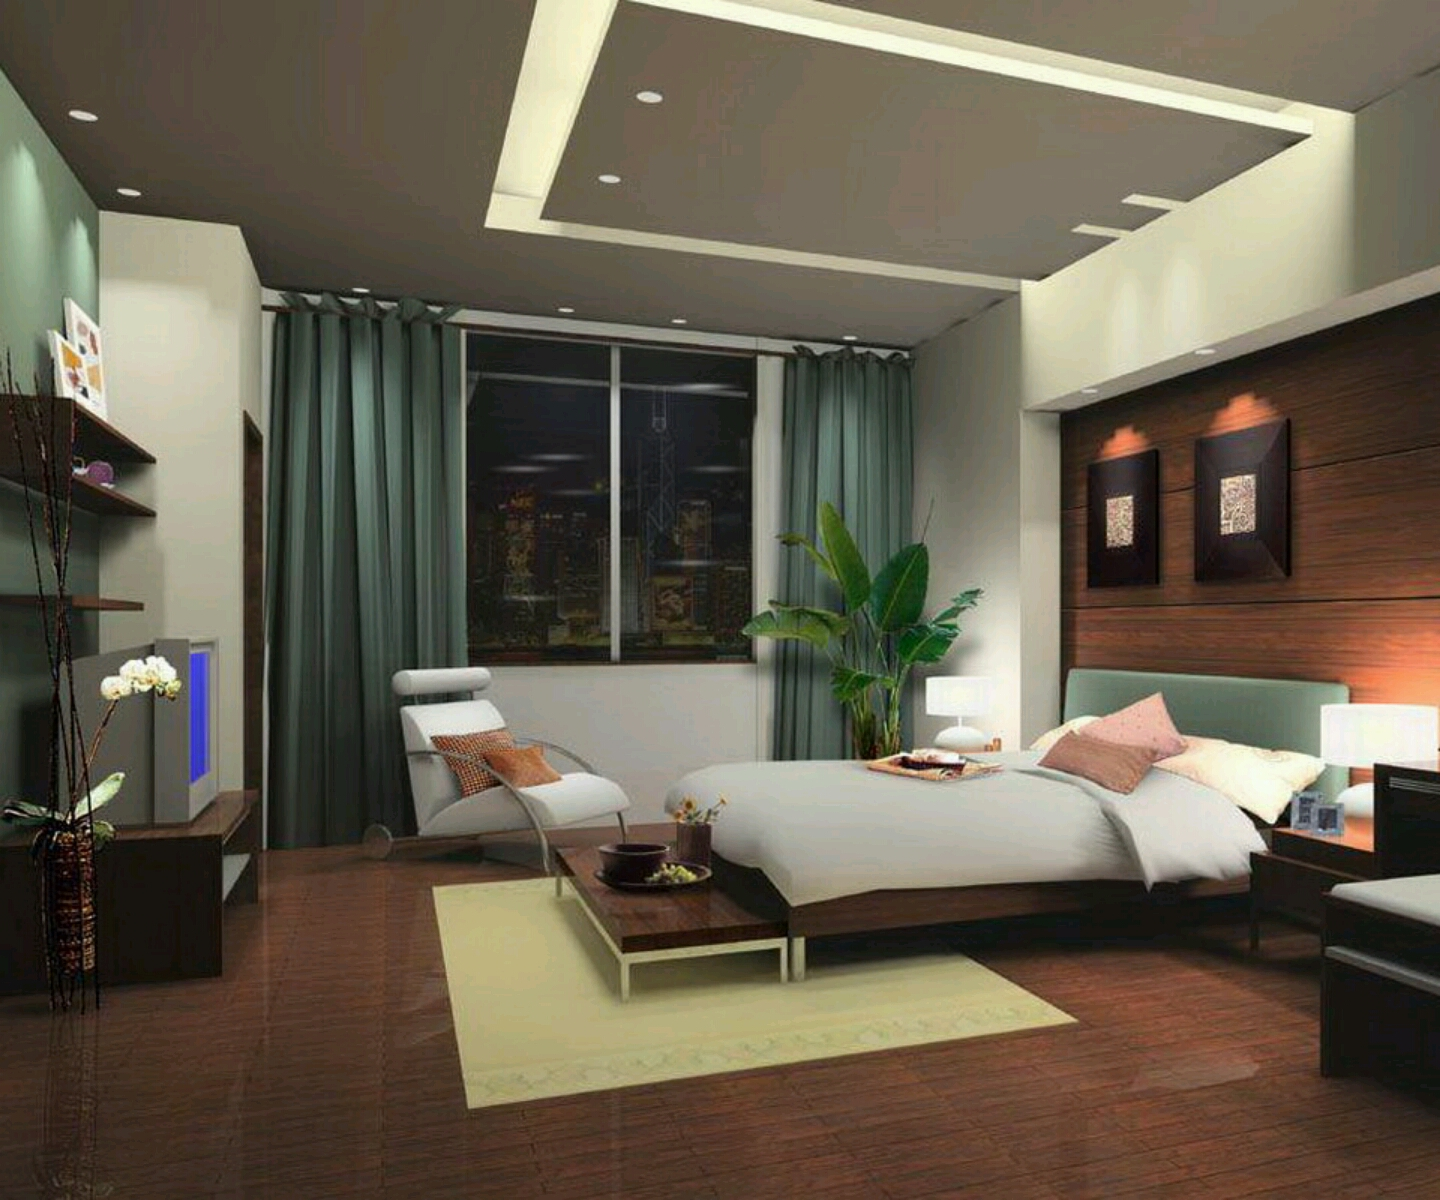 New home designs latest modern bedrooms designs best ideas for New bed design photos